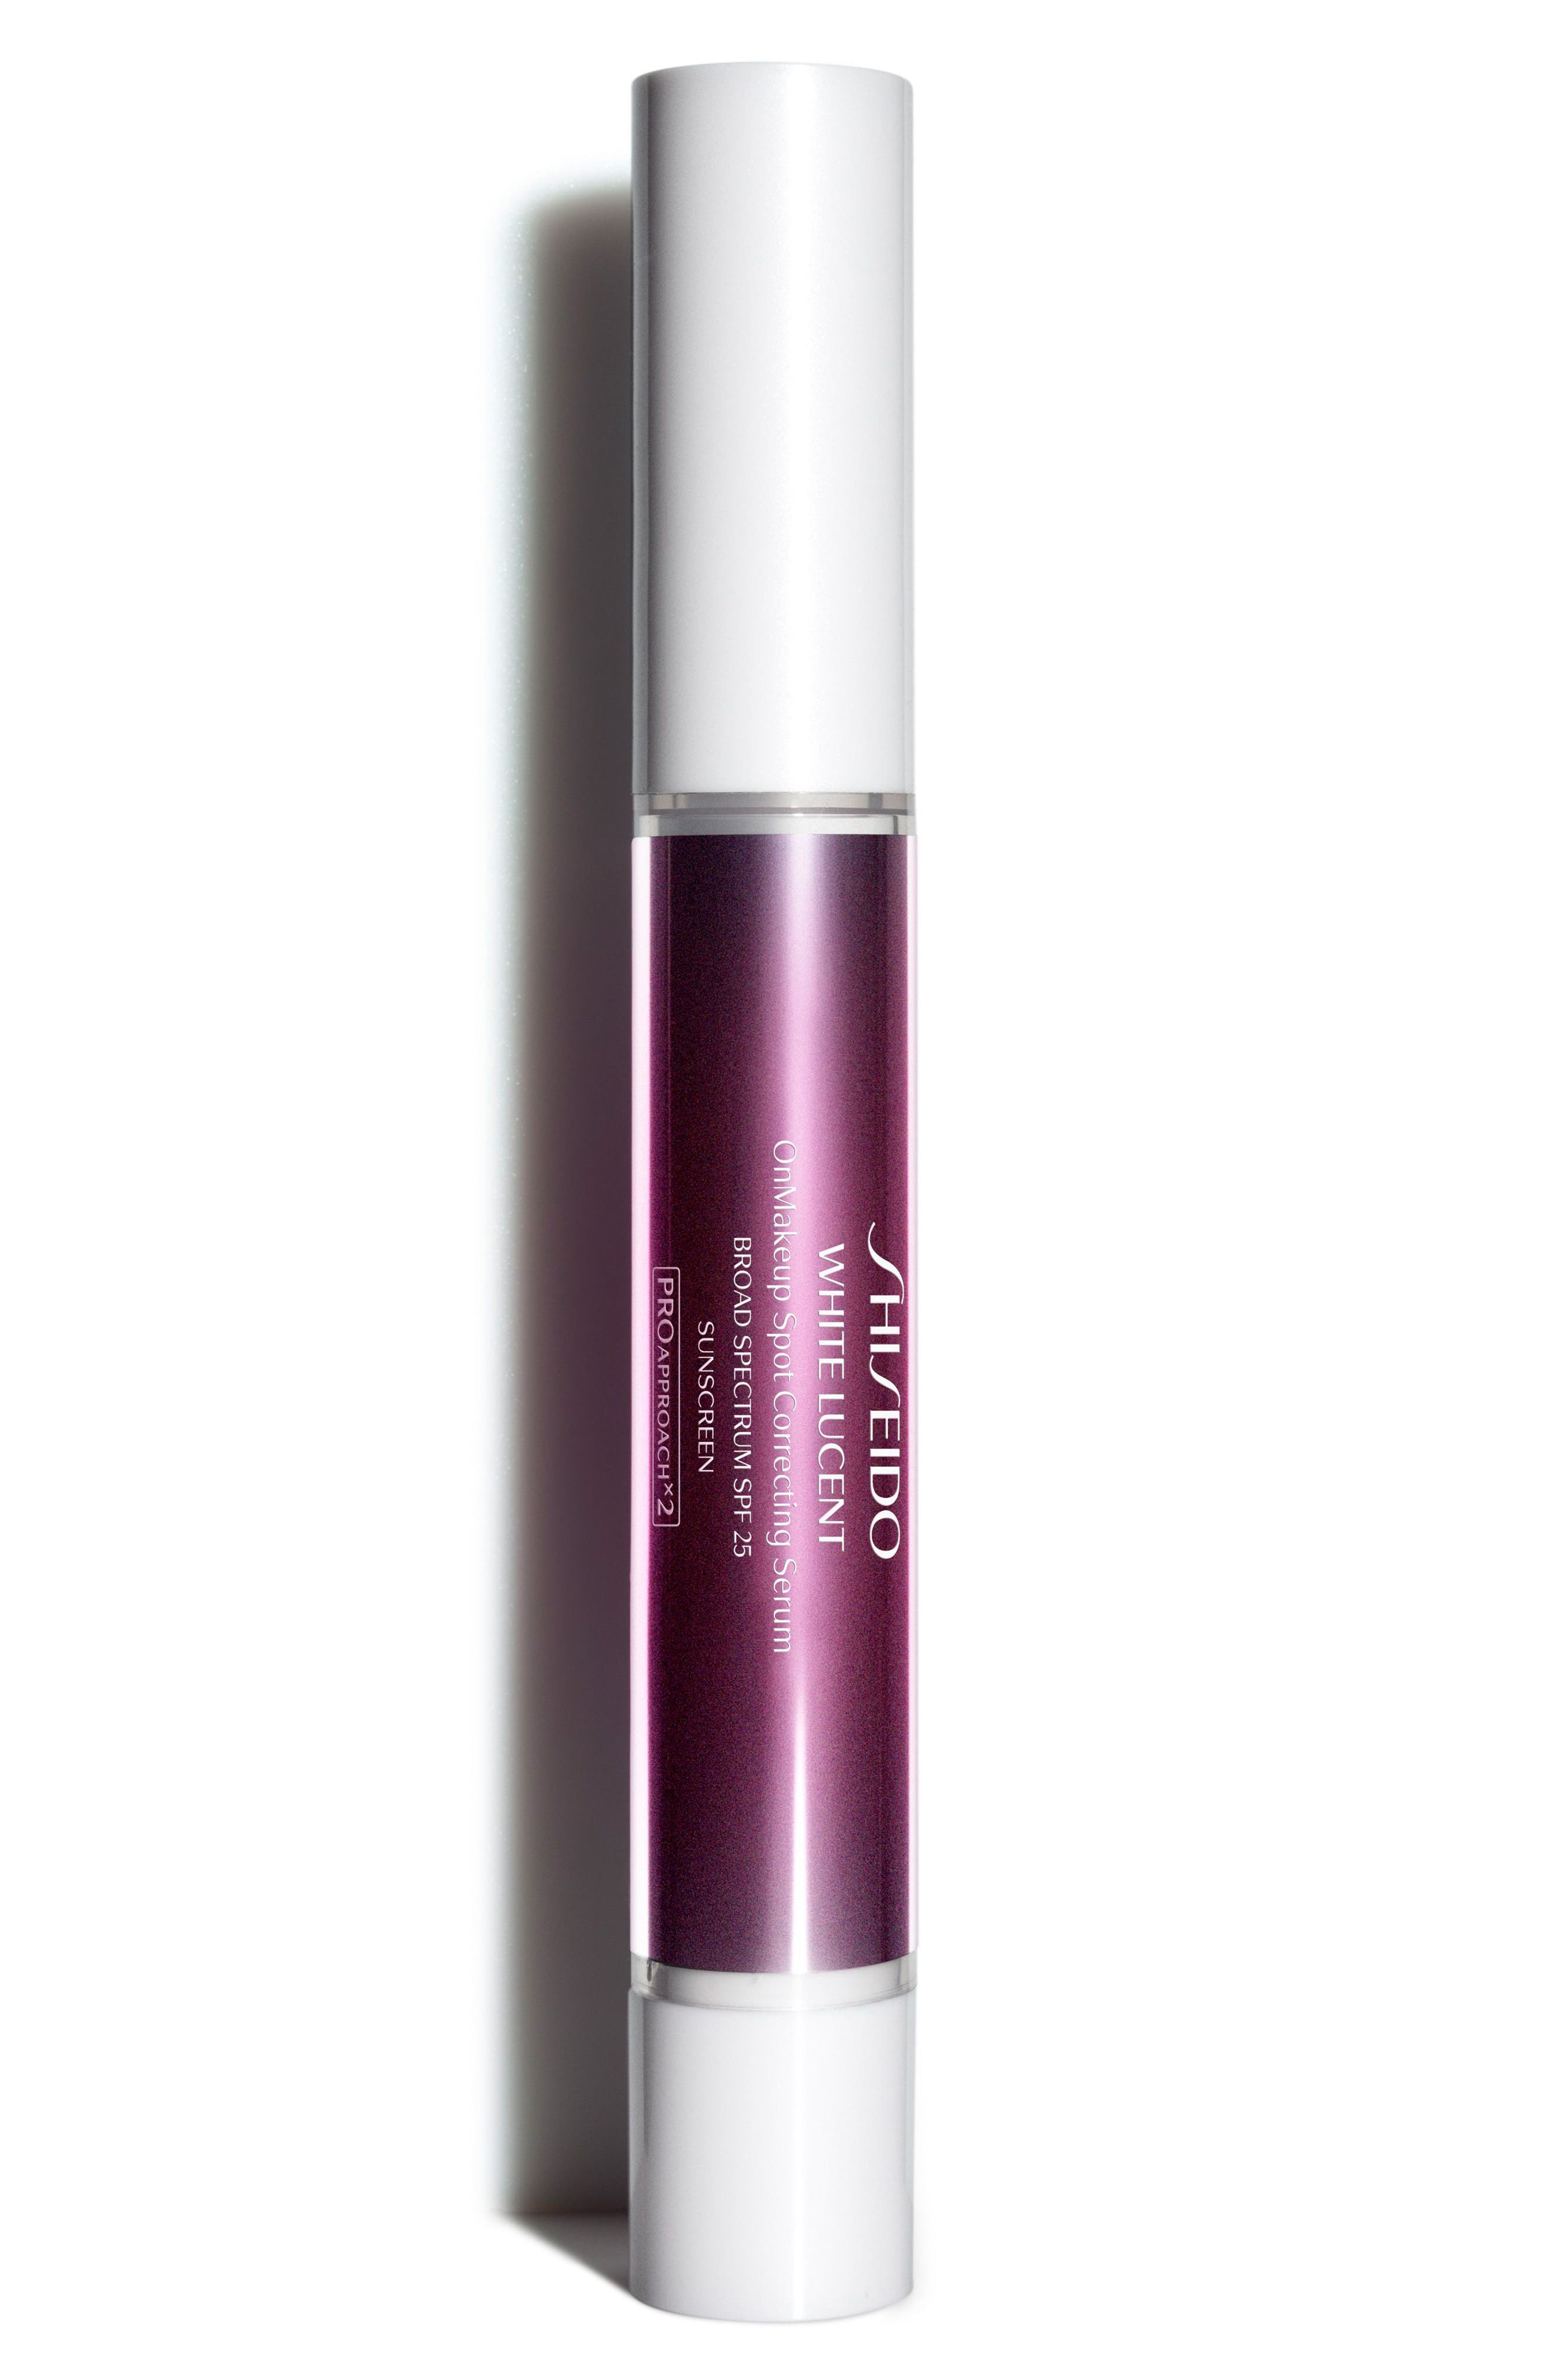 White Lucent OnMakeup Spot Correcting Serum Broad Spectrum SPF 25,                         Main,                         color, NATURAL LIGHT